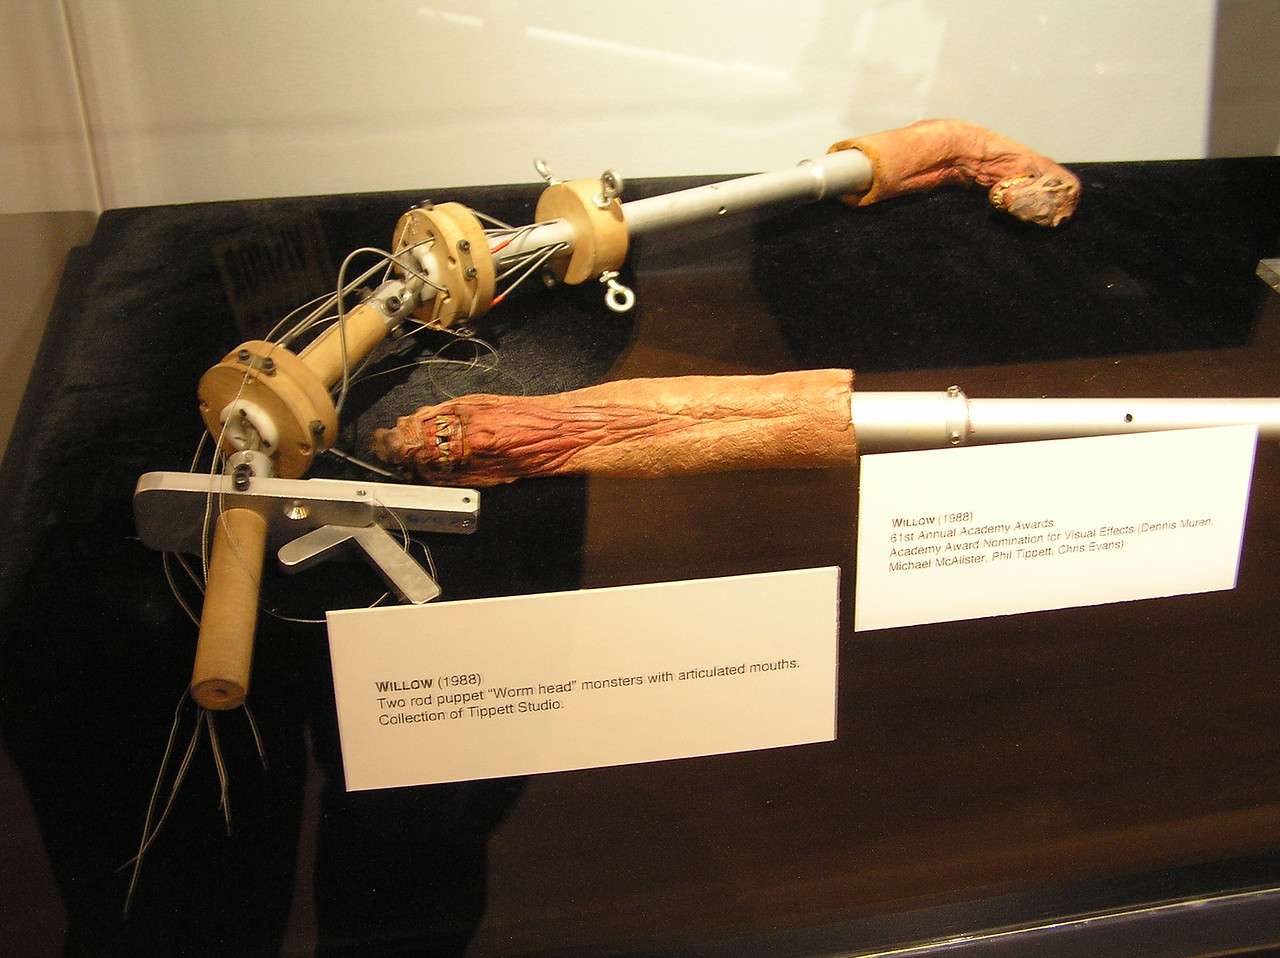 The Siskbert (moat monster) rod puppets for <i>Willow</i> (1988). The monsters are only about three inches long!